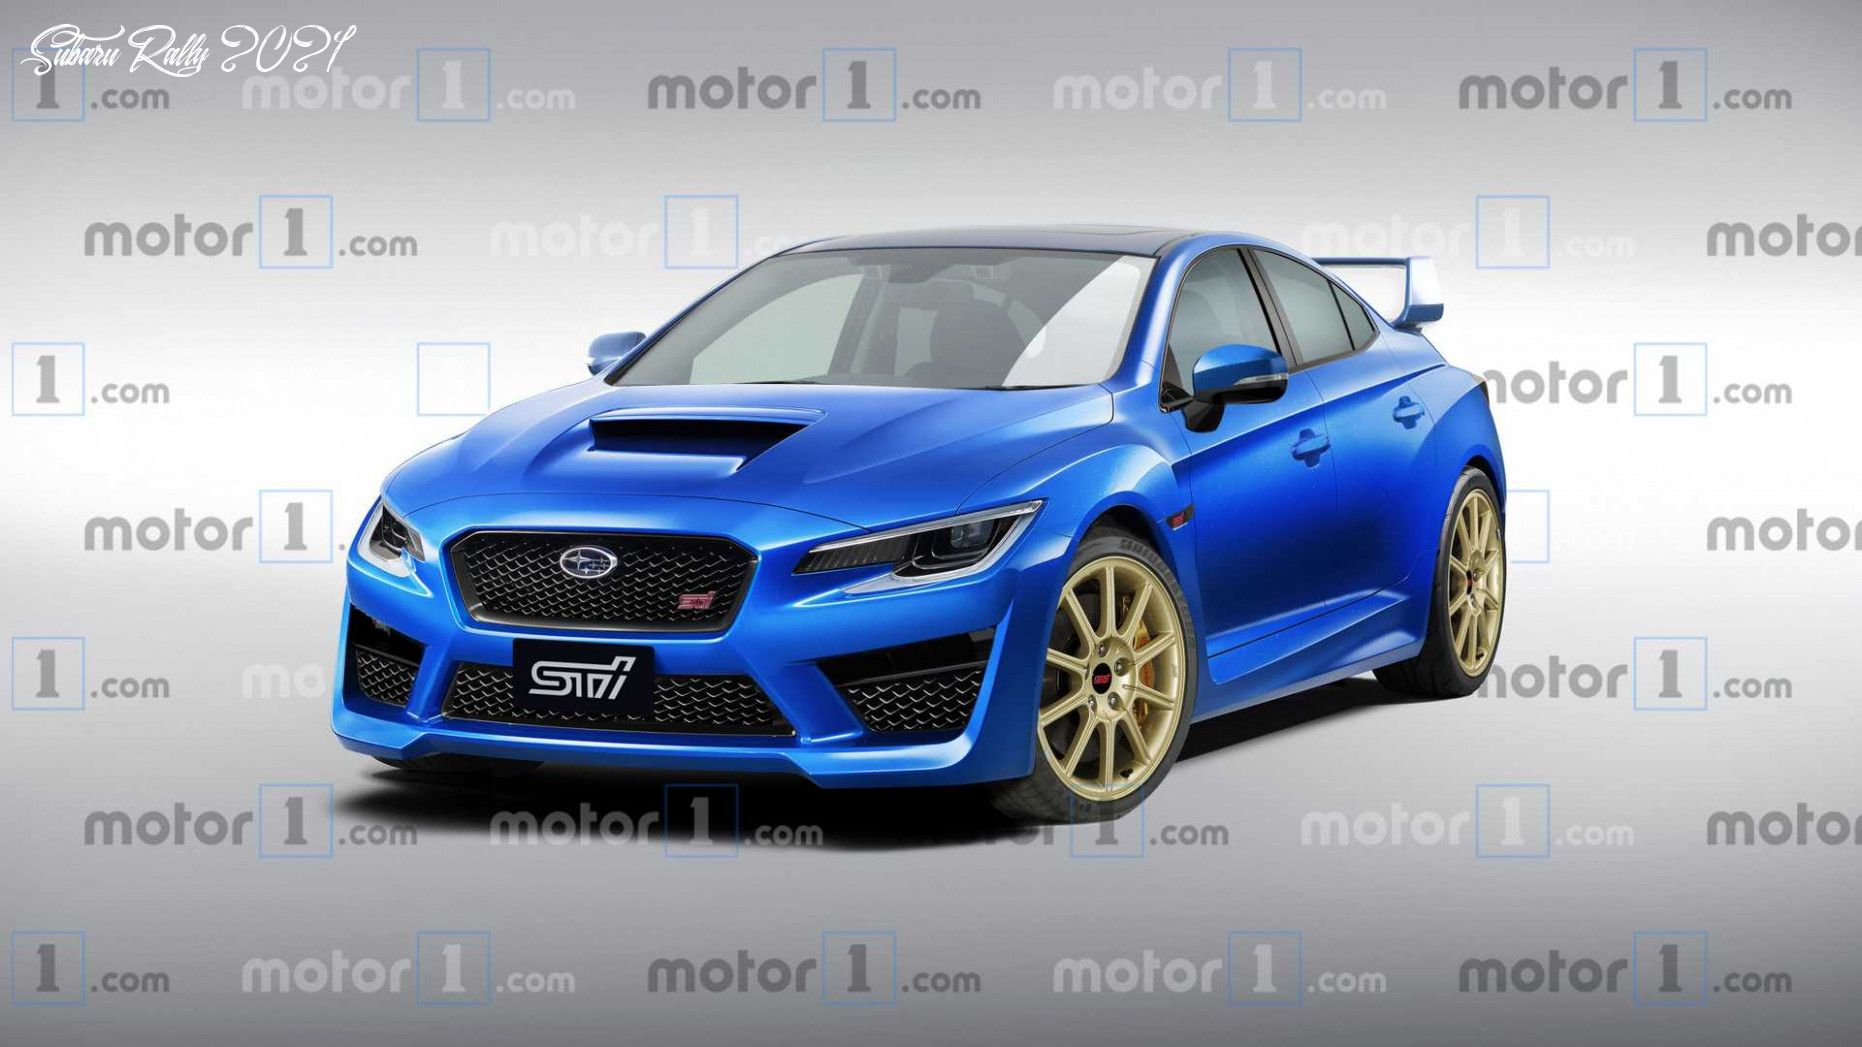 Subaru Rally 2021 Release Date And Concept in 2020